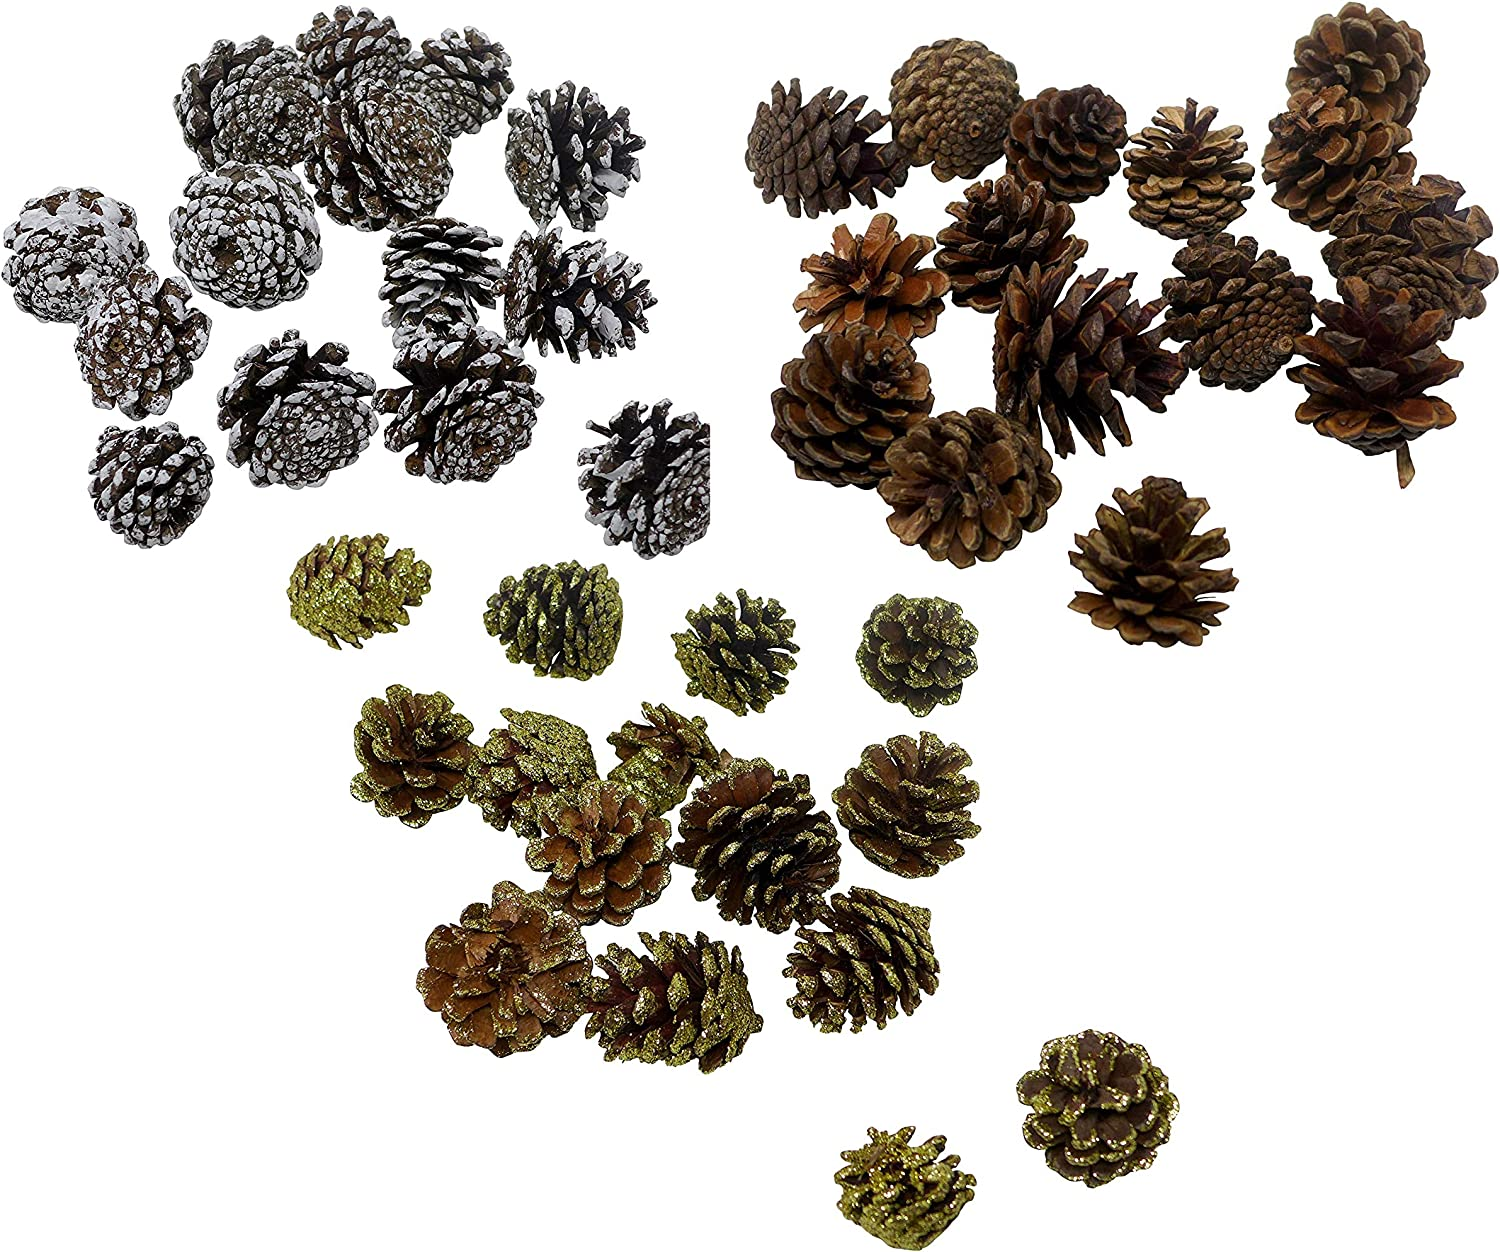 45-Pcs Party Decorative Pine Cones - Natural, Glitter Gold & White | Vase Fillers, Table Scatter, Home Decor, Bowl Display, Party Supplies